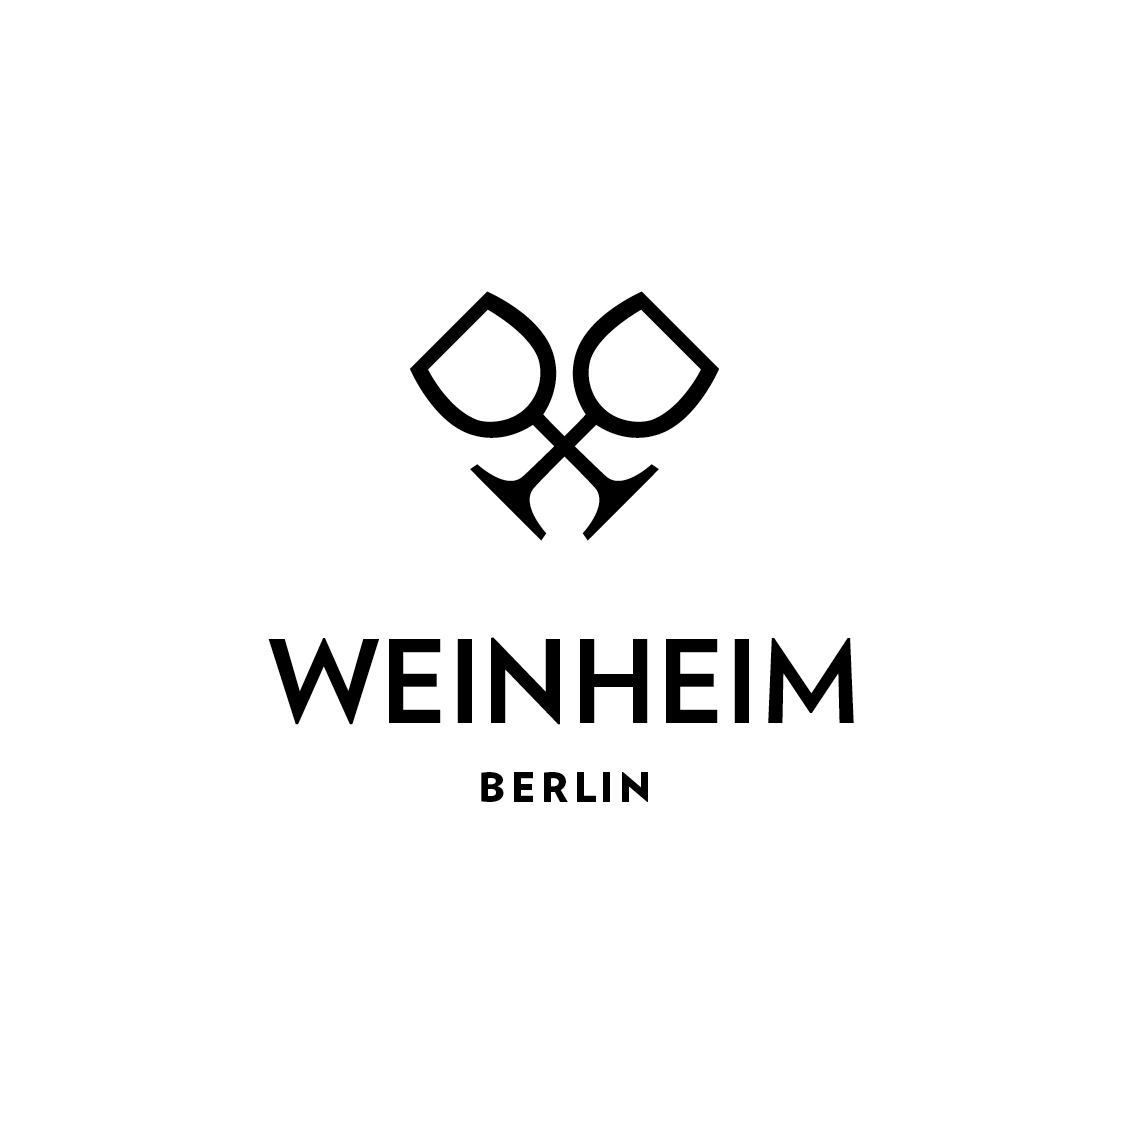 Logo and name for Weinheim independent wine tastery Berlin With Lars Schrage